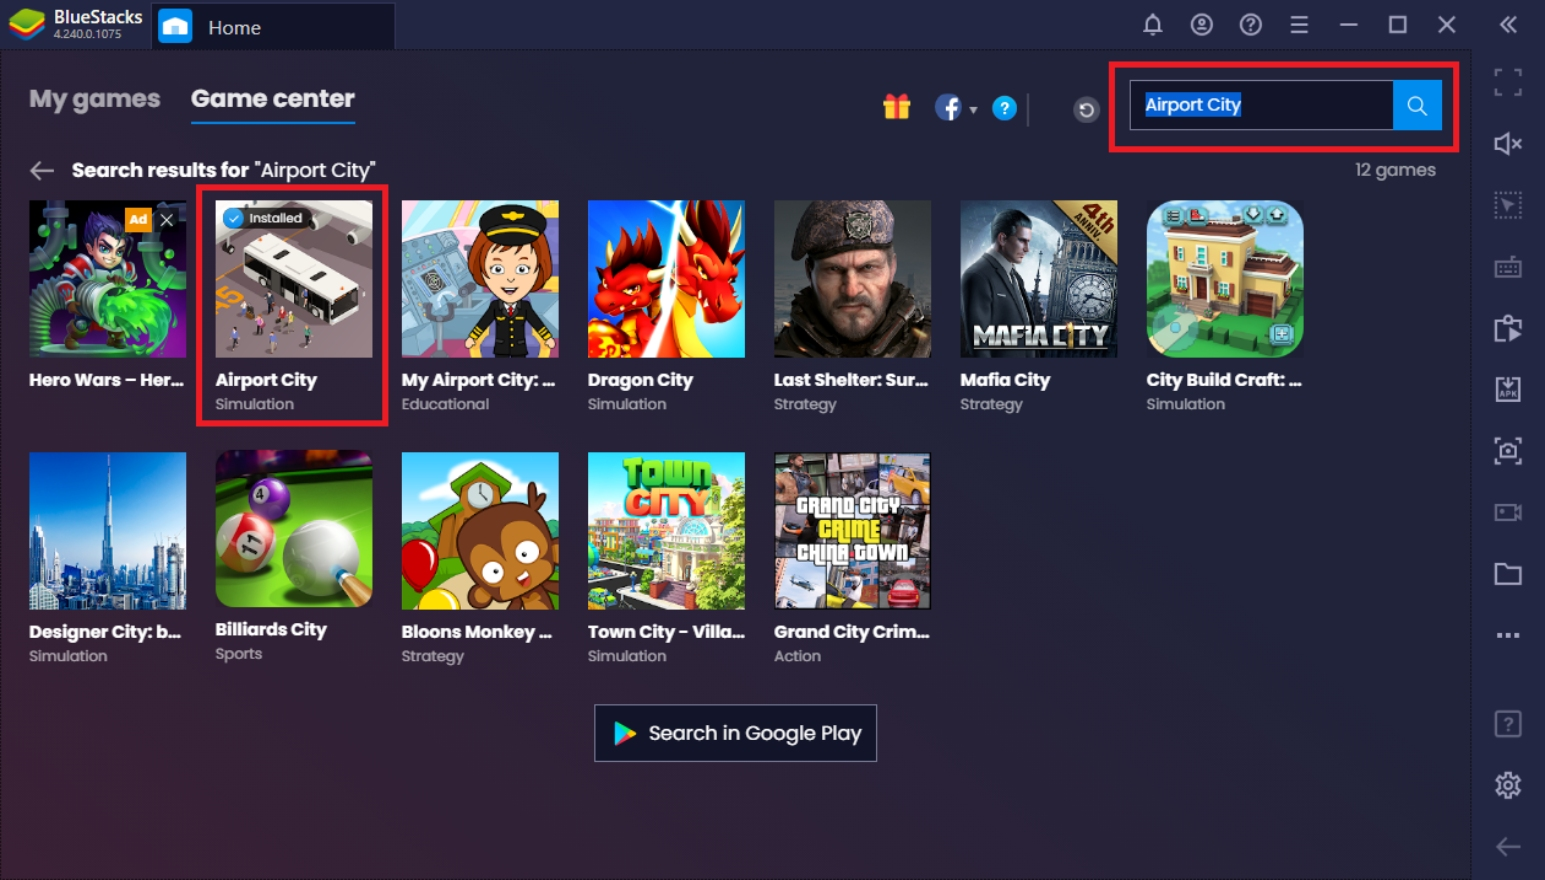 Cara Bermain Airport City di PC dengan BlueStacks